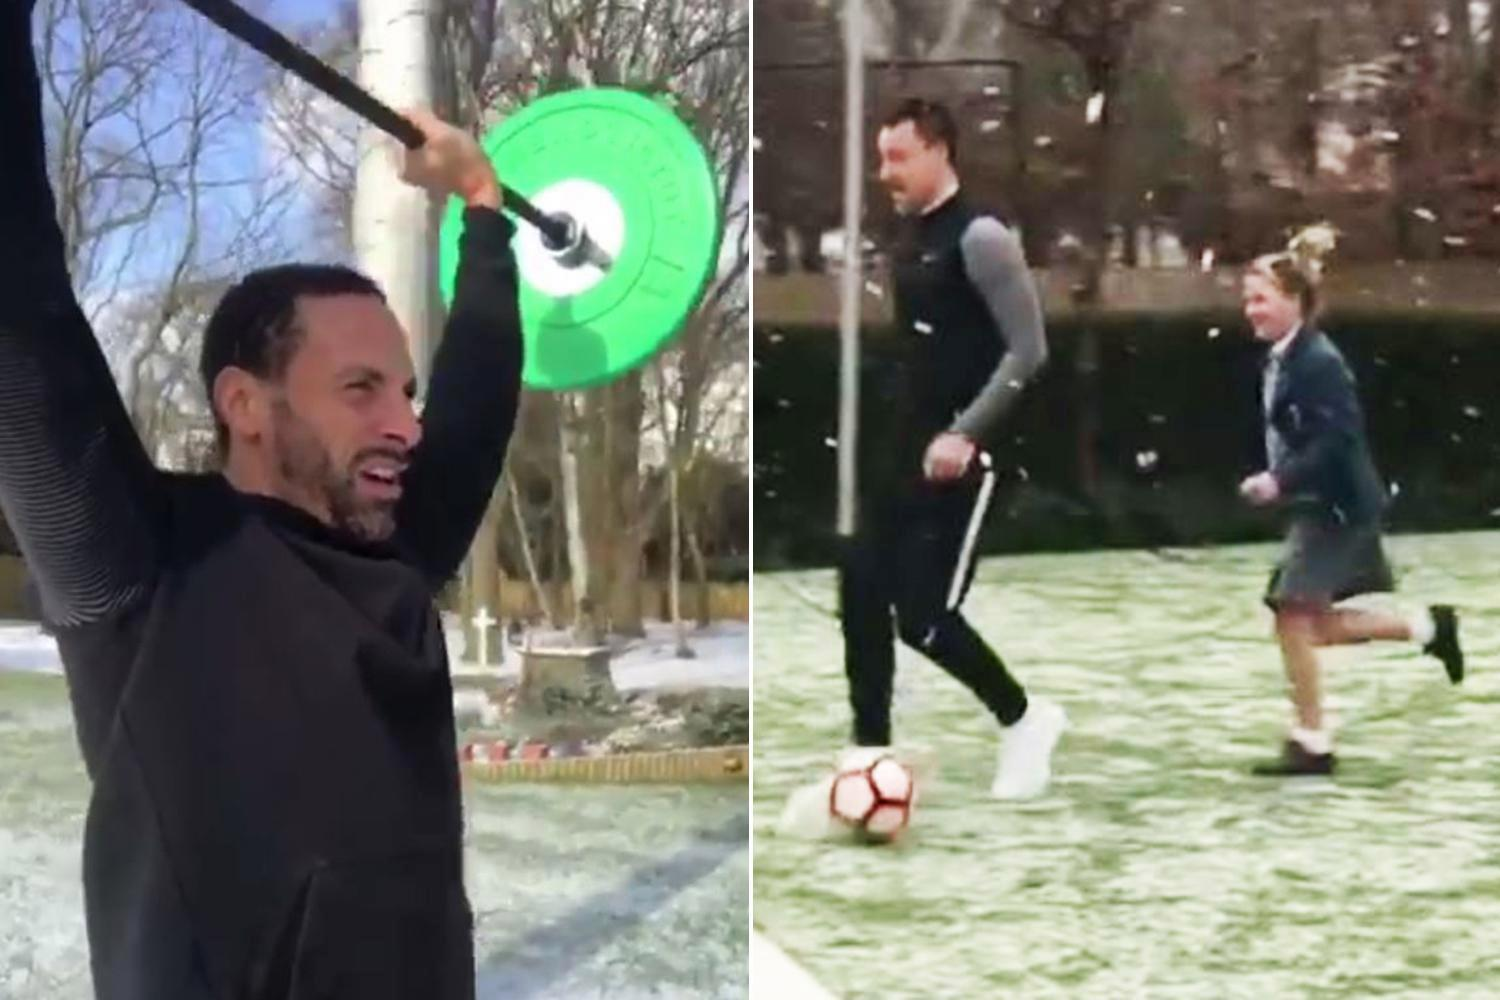 John Terry and Rio Ferdinand train in gardens as 'Beast from the East' snow storms batter Britain